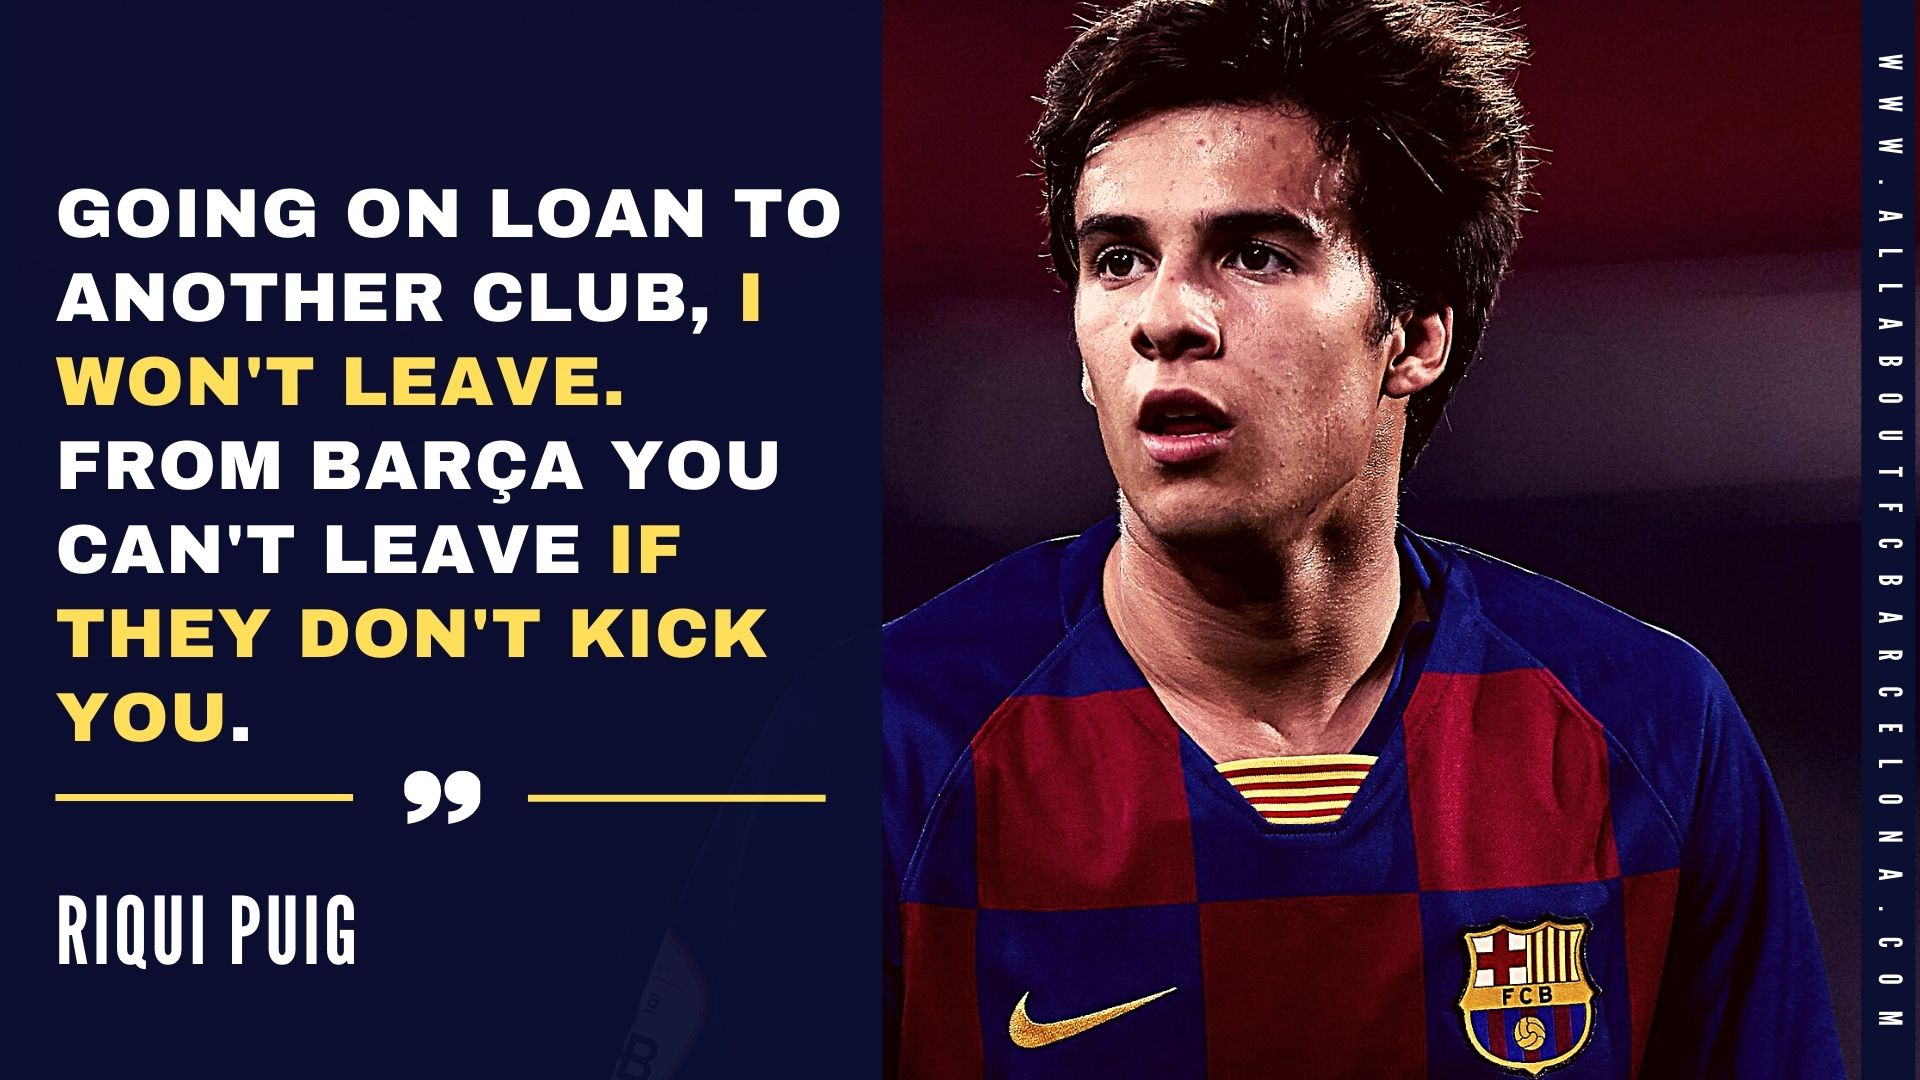 Riqui Puig on the verge of being kicked out of FC Barcelona